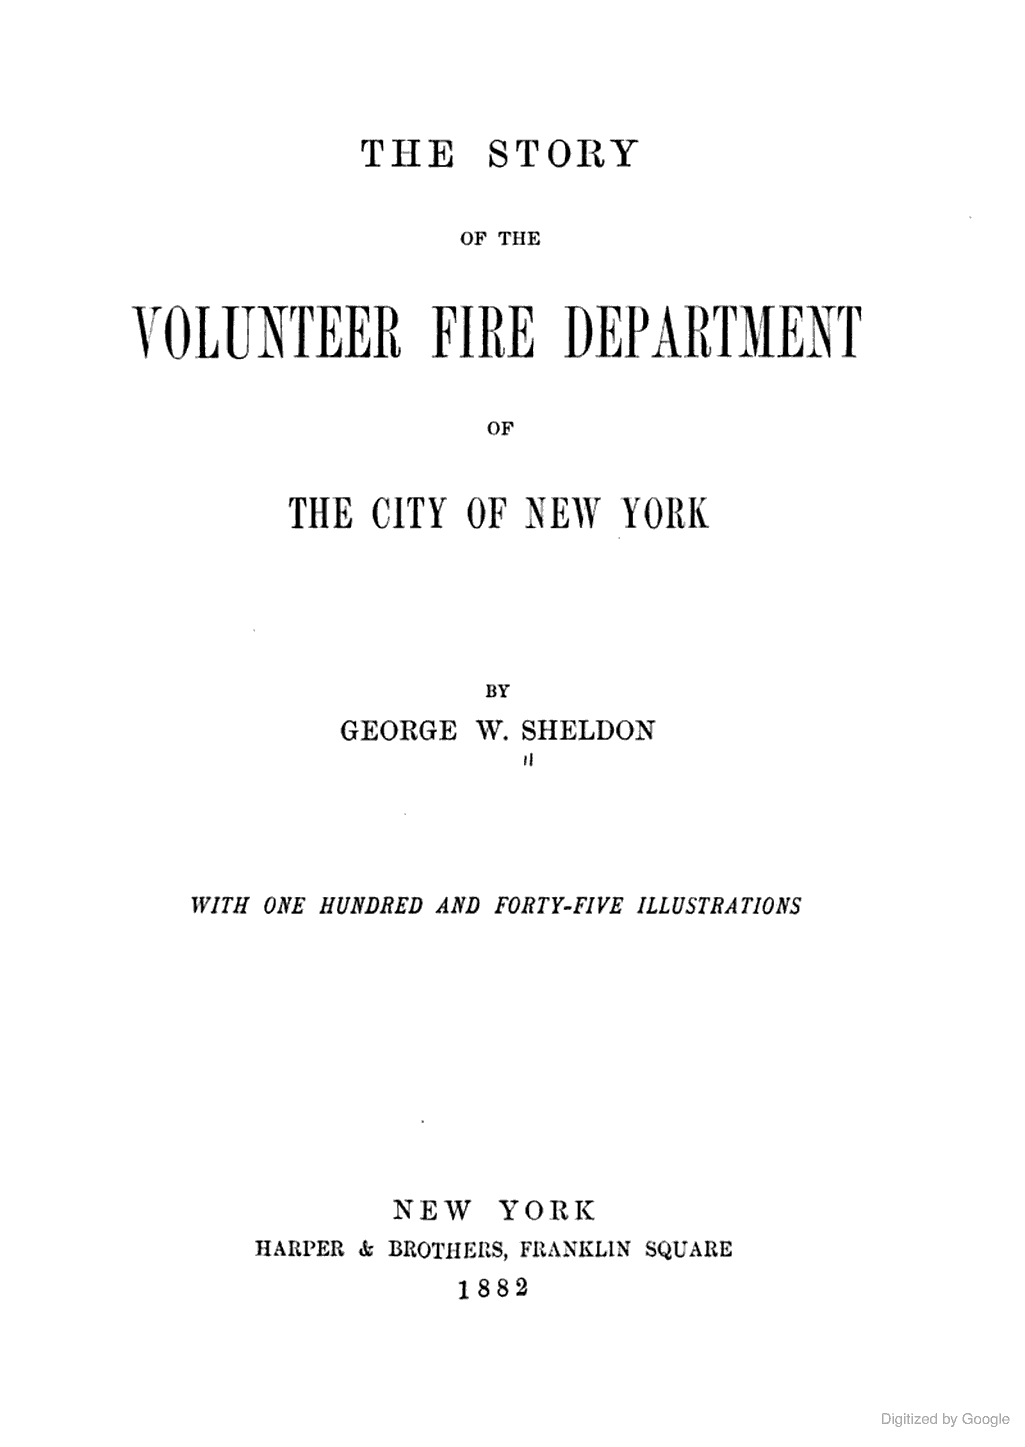 SHELDON, George. [1882] The Story Of The Volunteer Fire